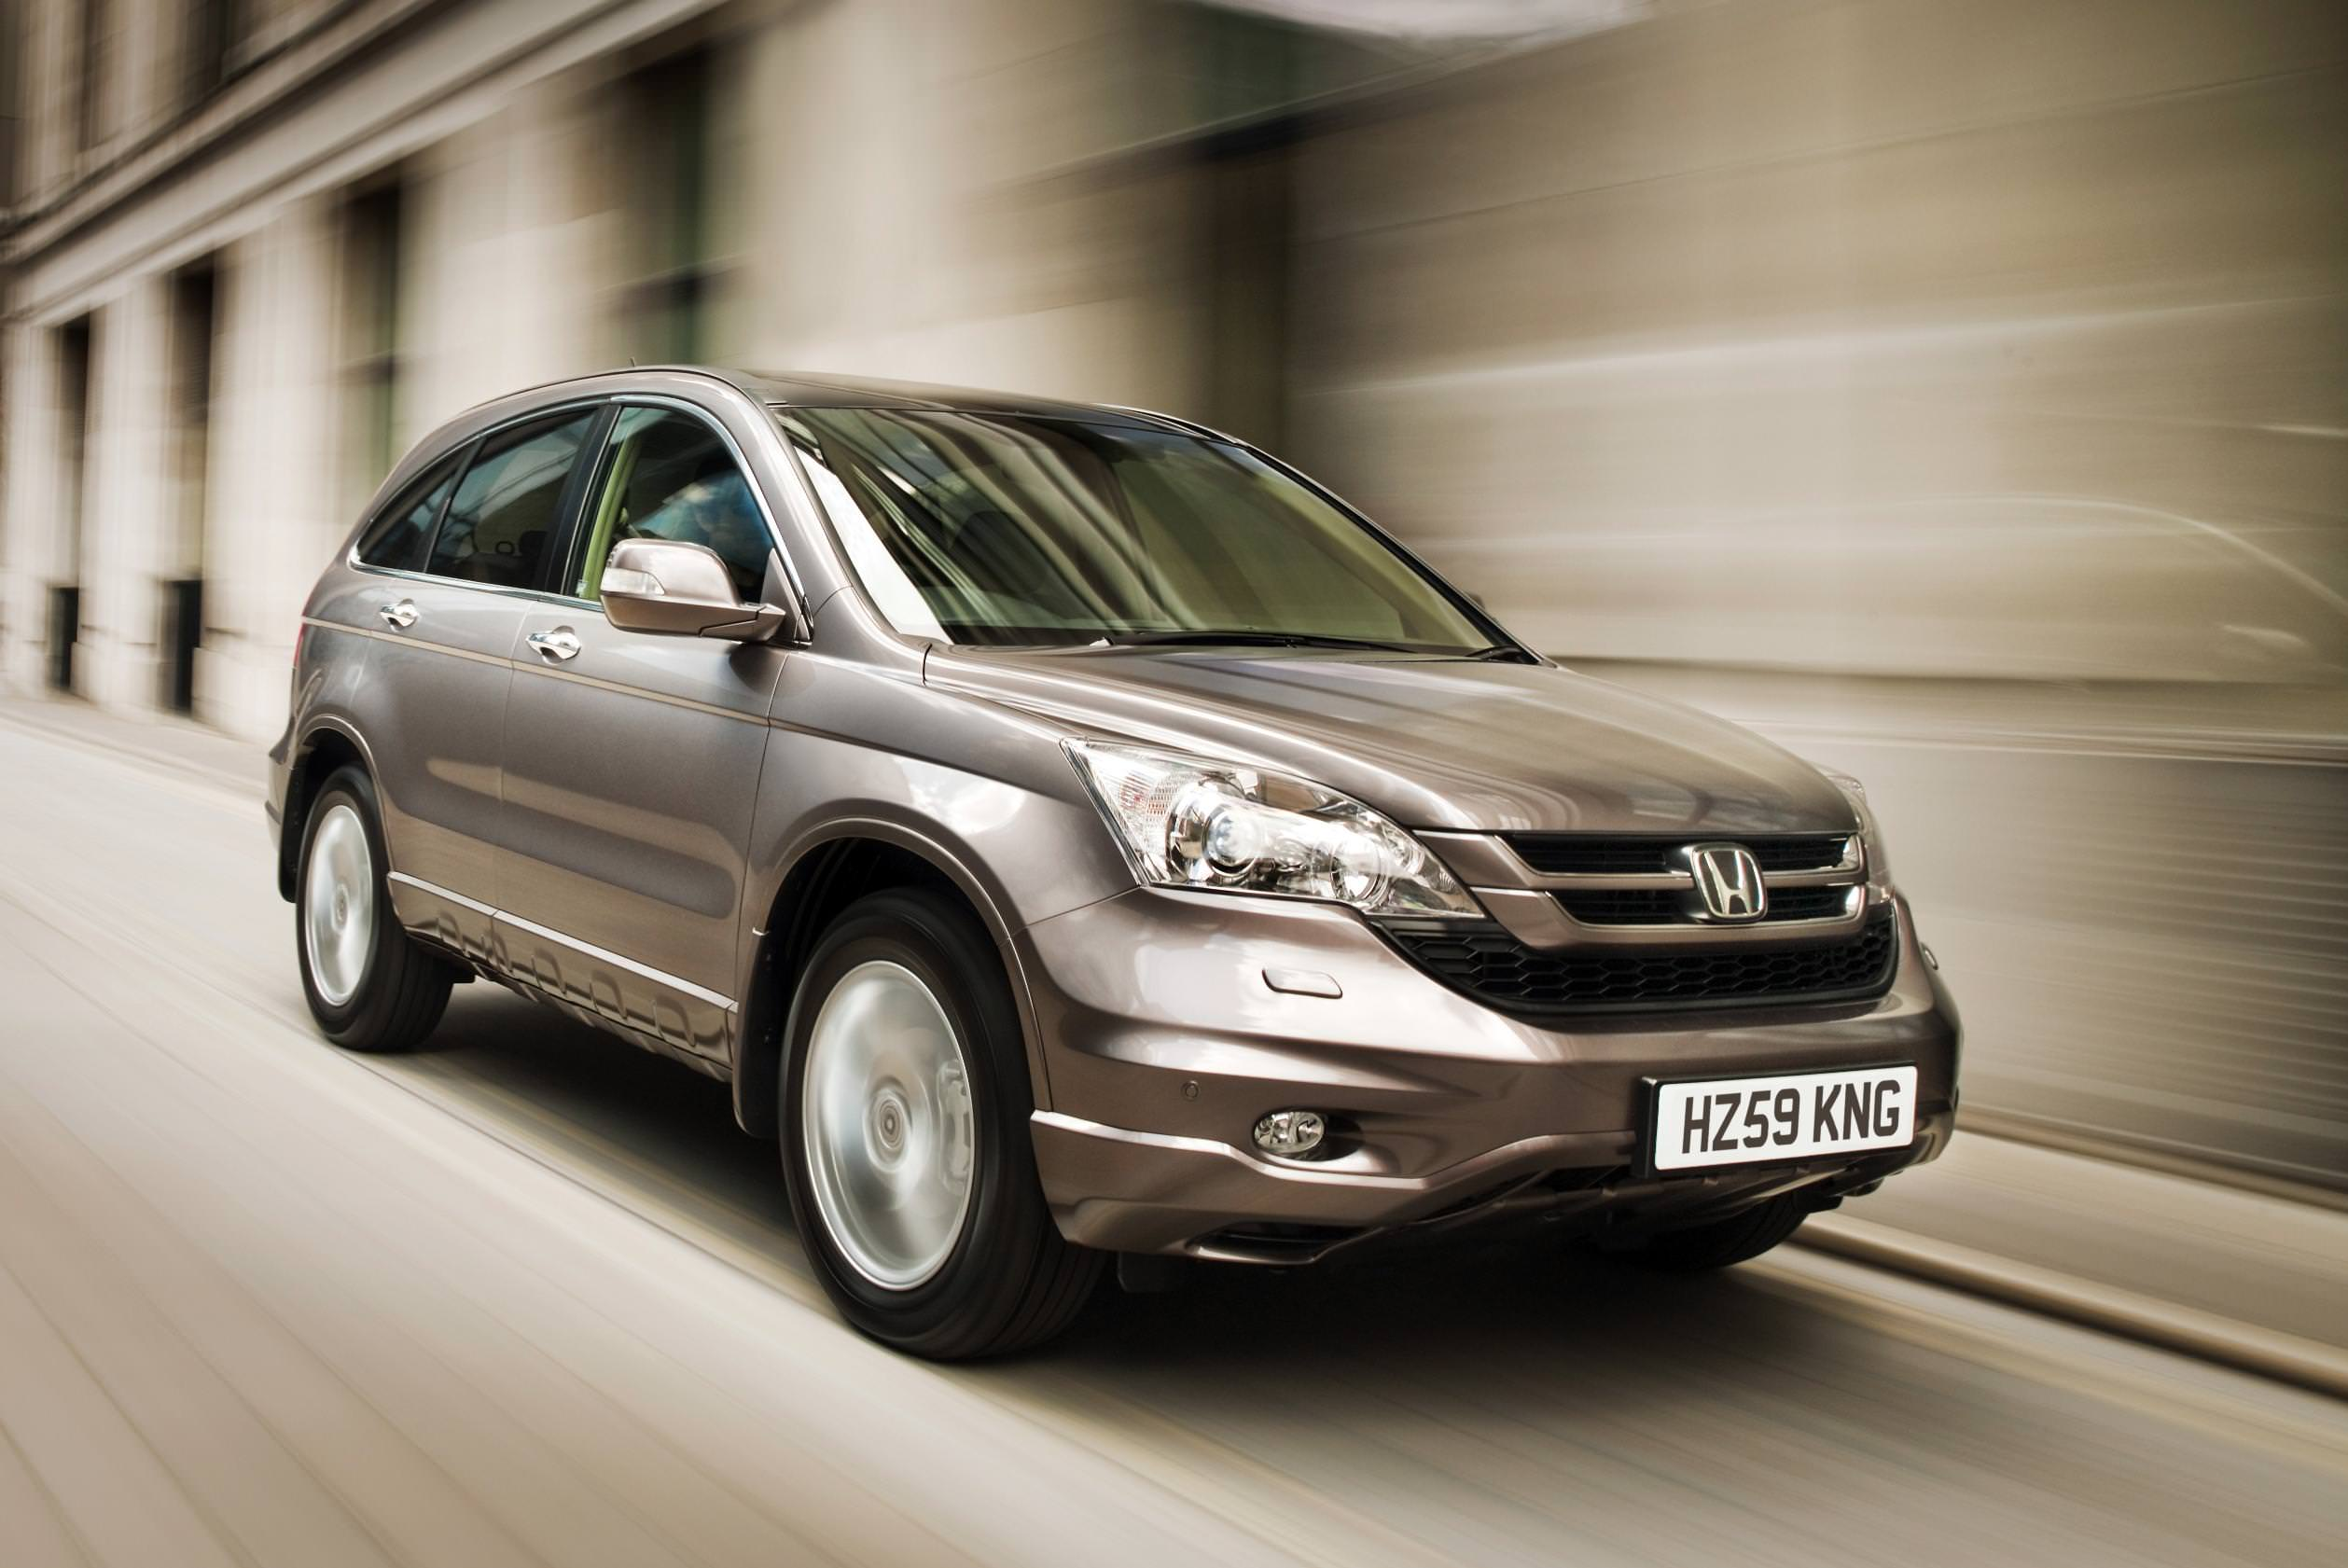 One of the best used family cars for £600 - Honda CR-V